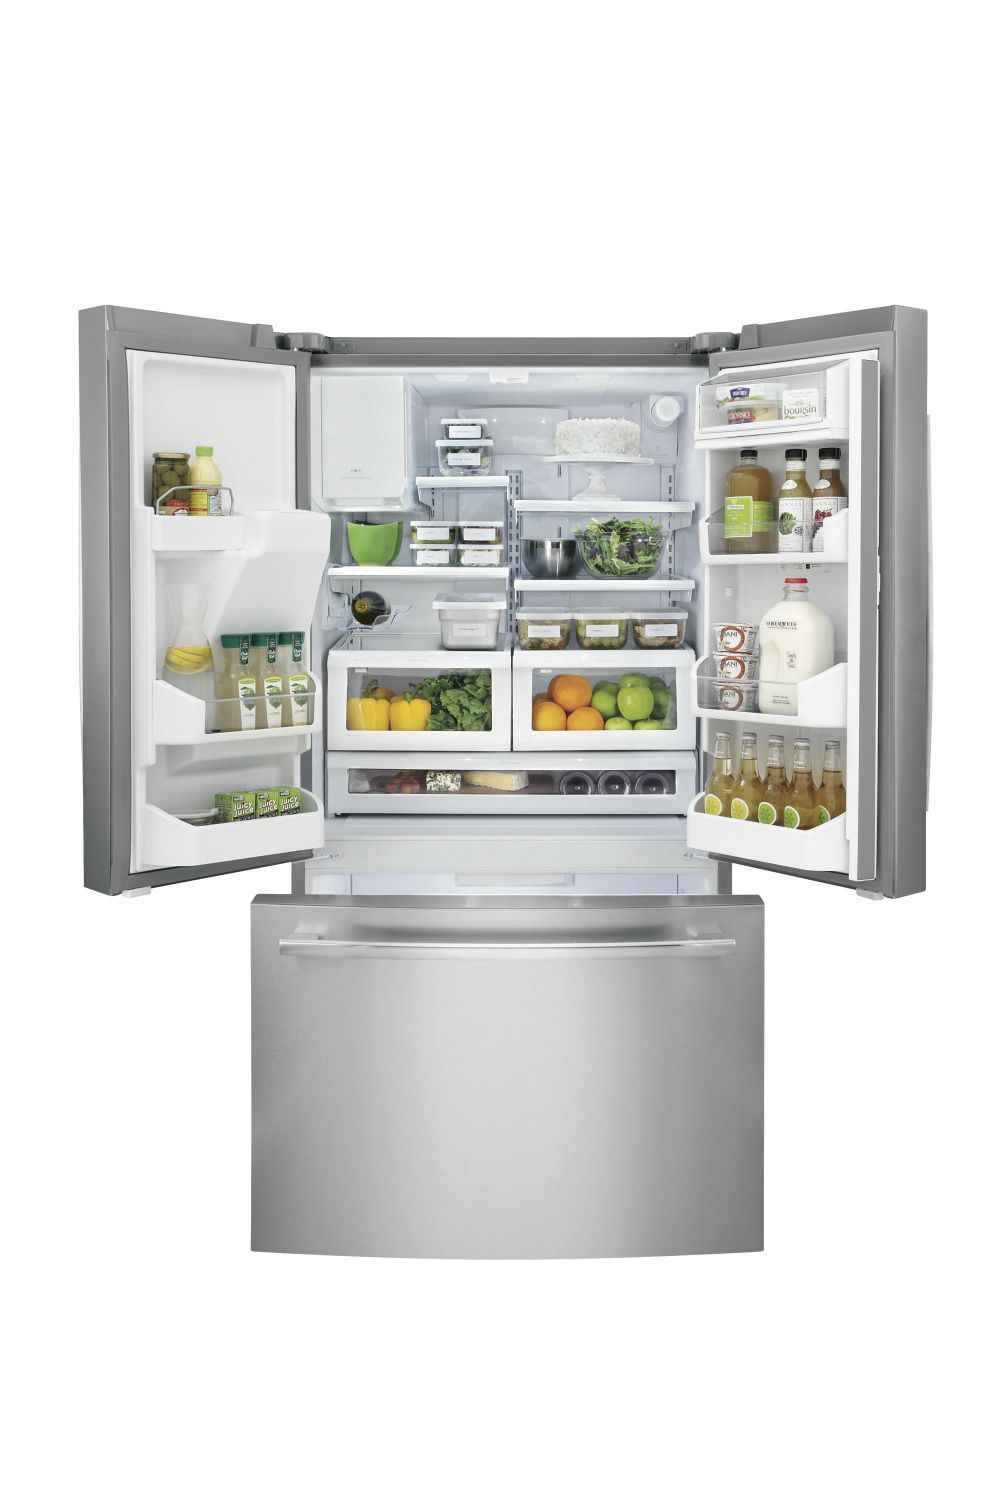 Frigidaire 22.6 cu. ft.Counter-Depth French-Door  Refrigerator - Stainless Steel